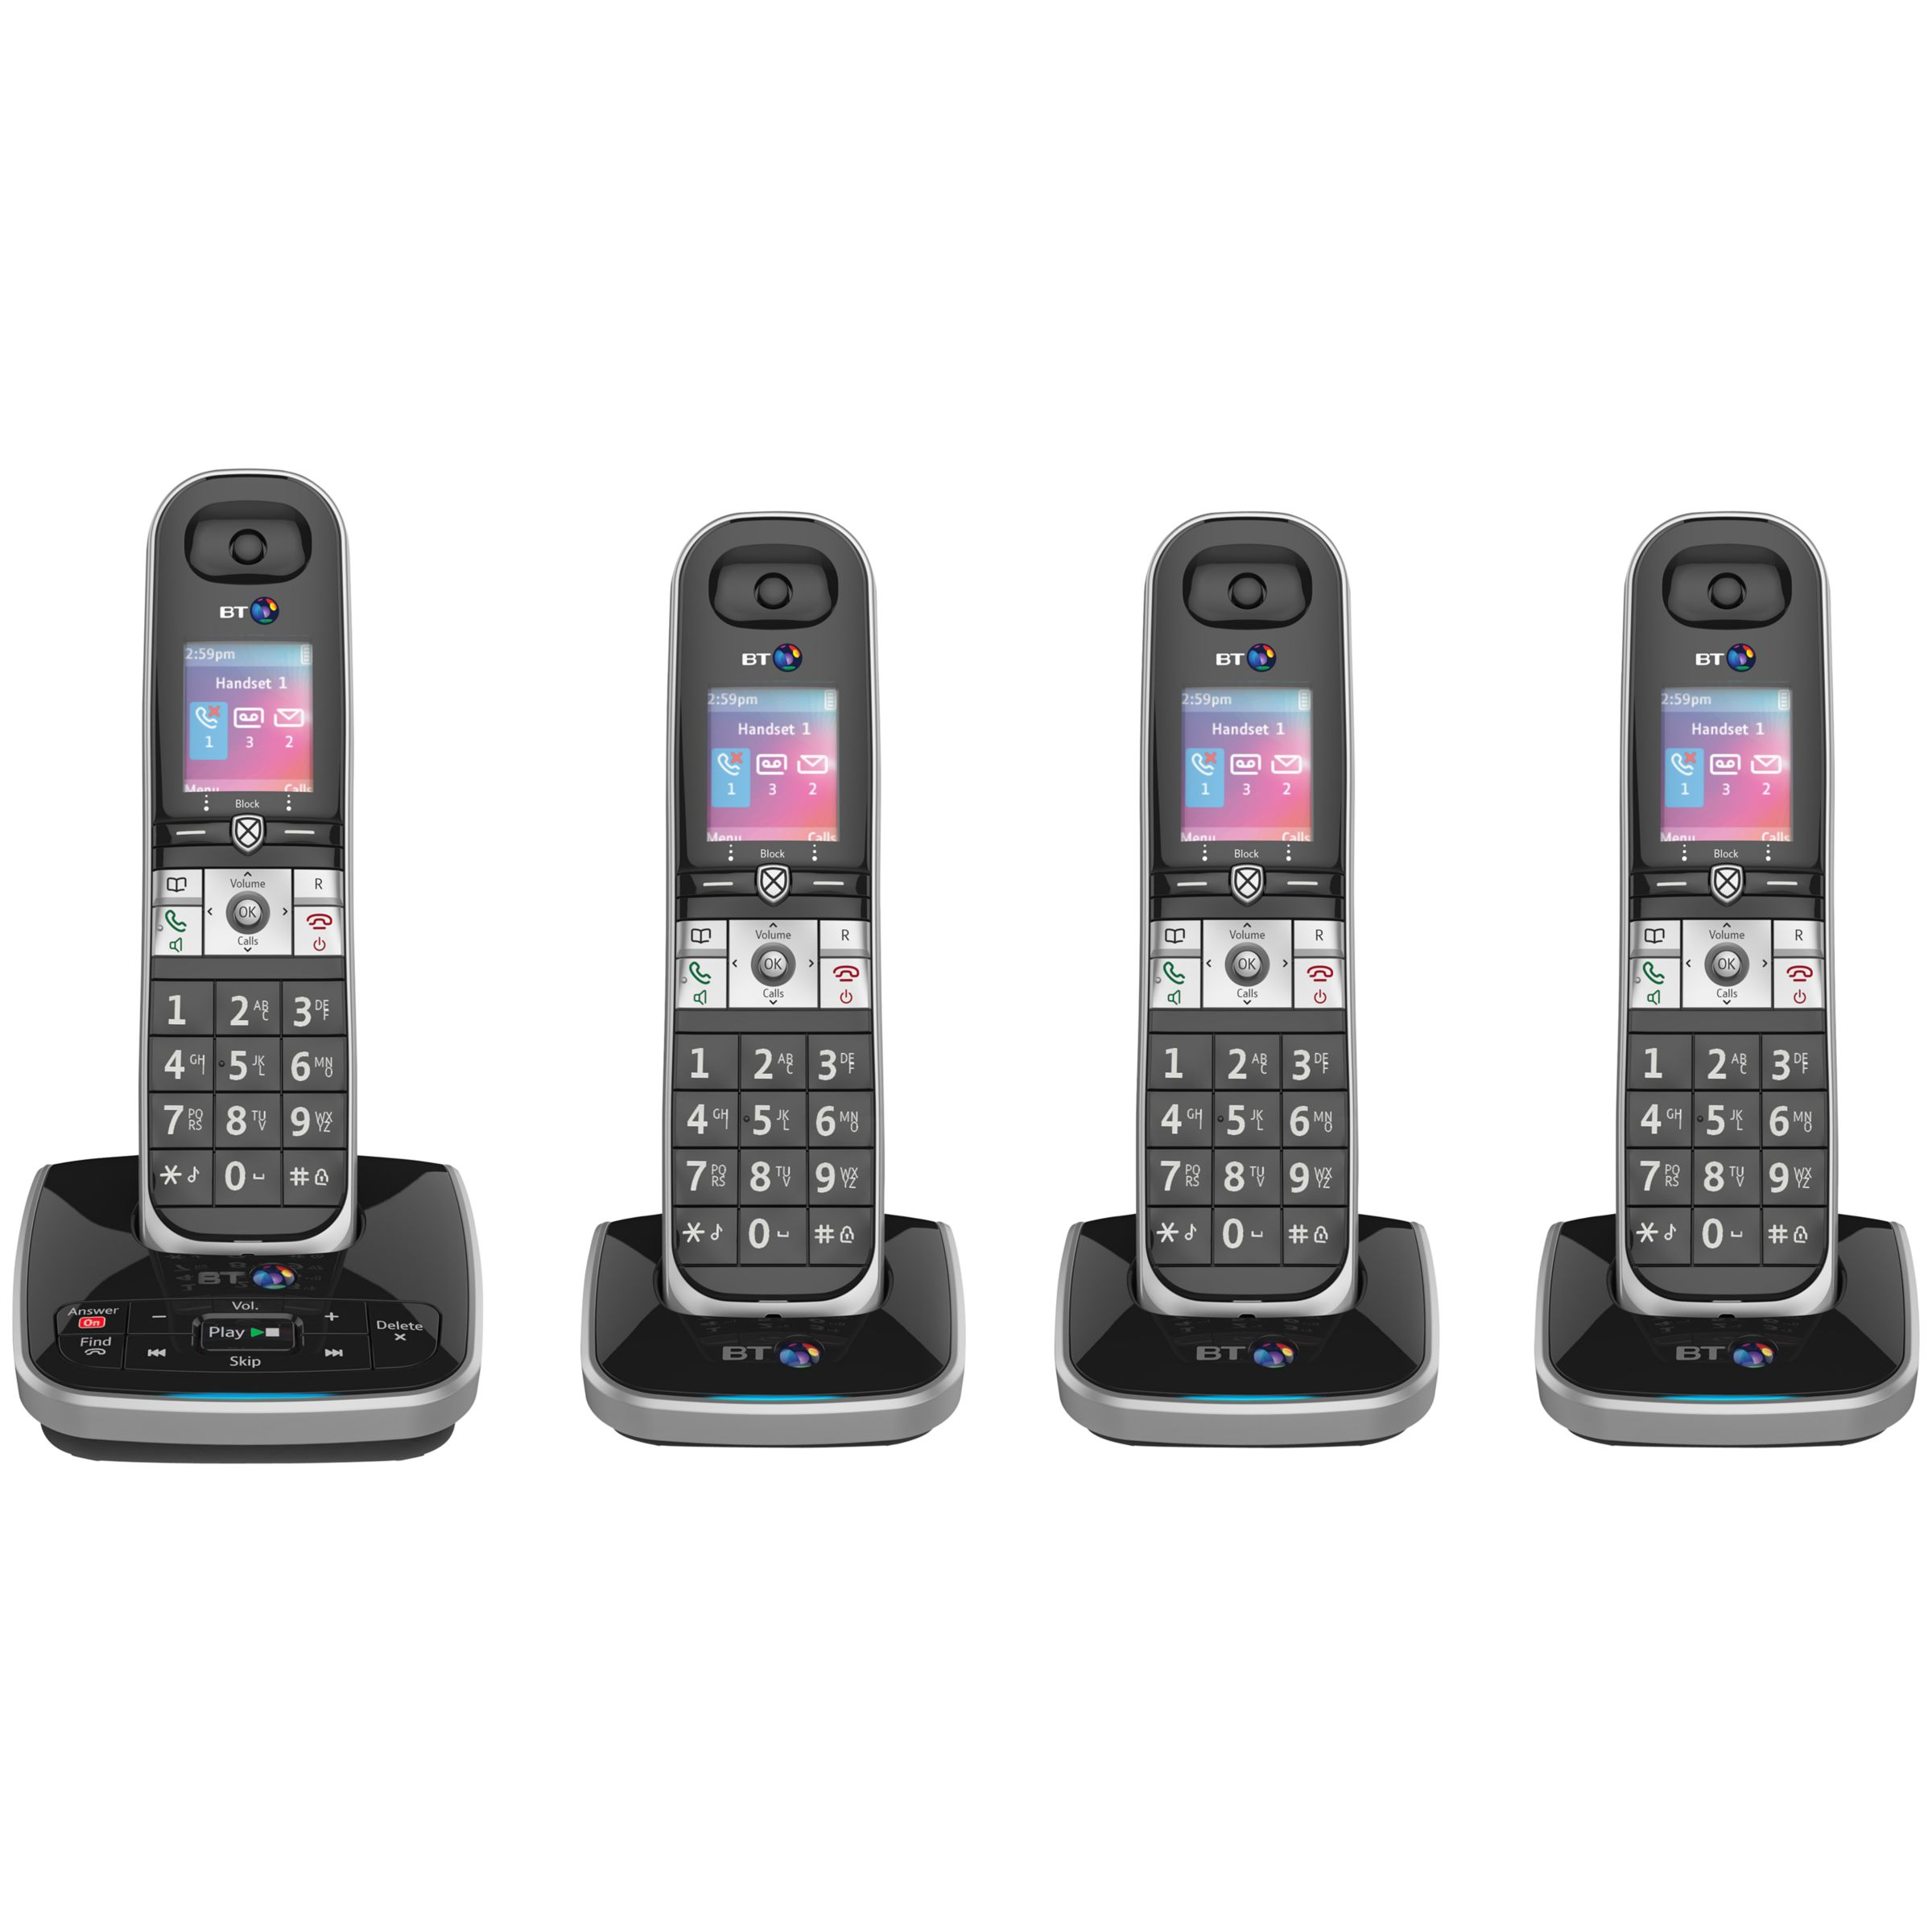 BT BT 8610 Digital Cordless Phone With Advanced Call Blocking & Answering Machine, Quad DECT